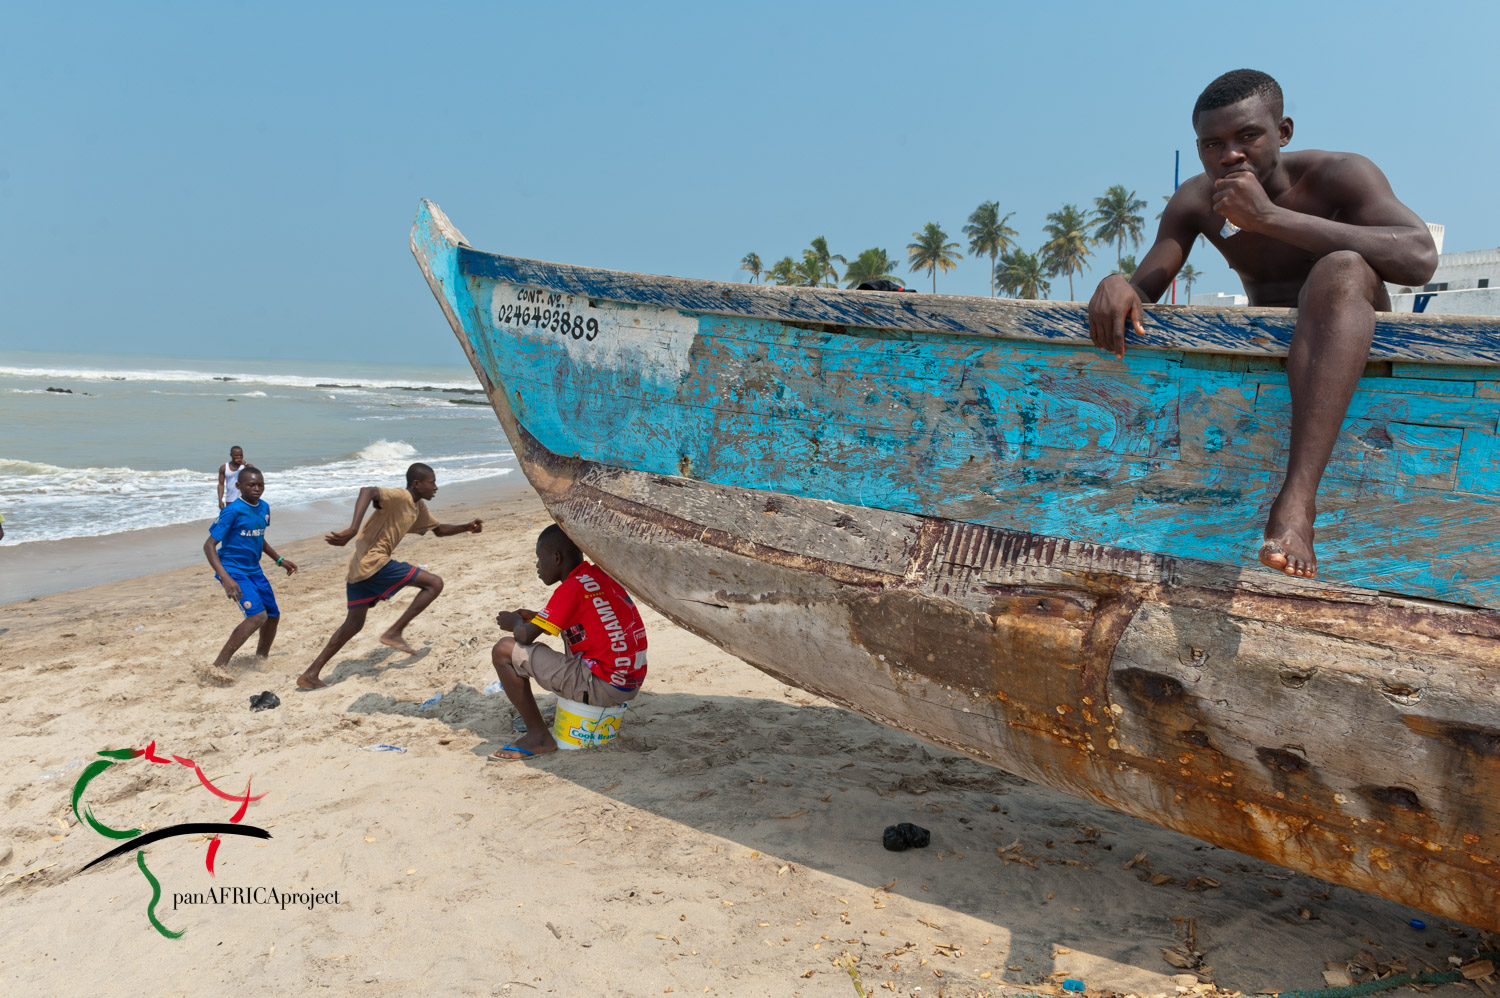 Fishing boat / soccer game. Gulf of Guinea, El Mina, Ghana